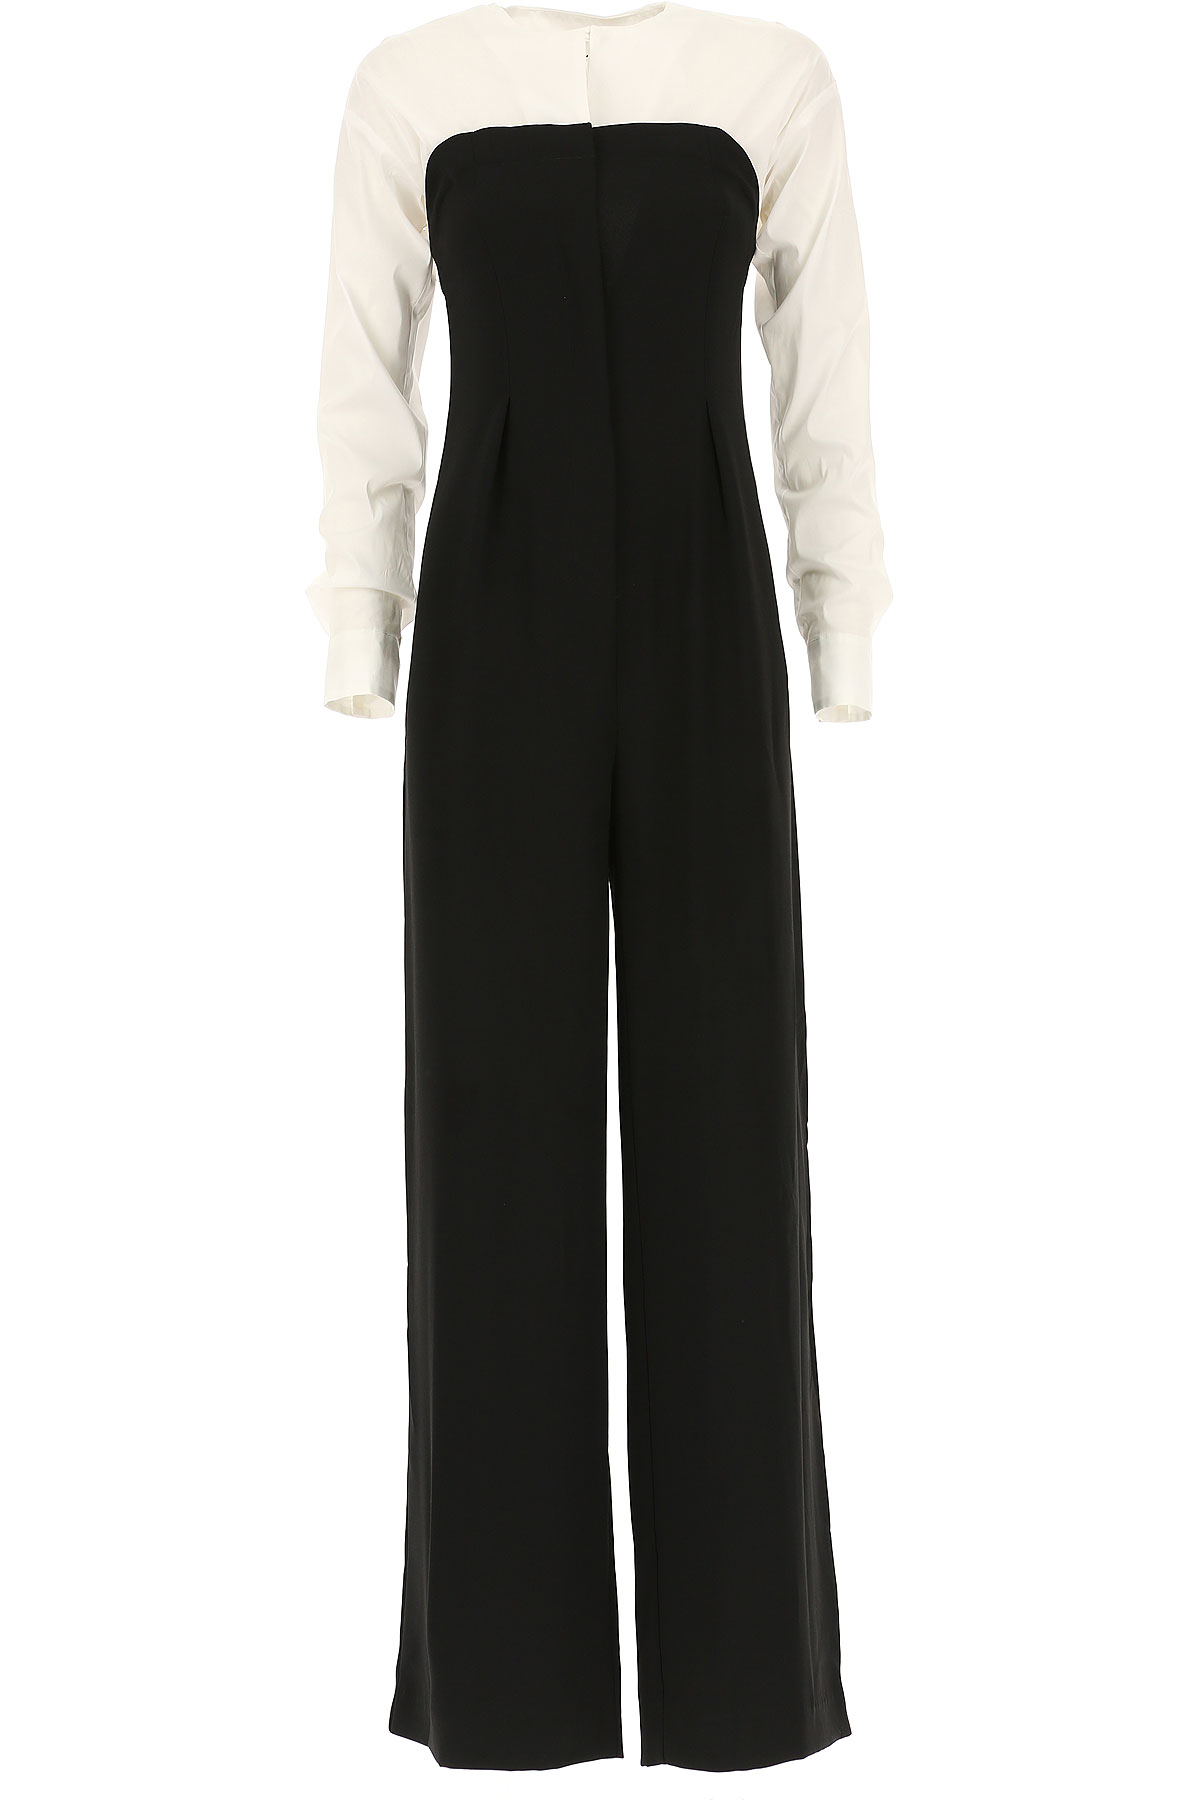 Image of Liviana Conti Dress for Women, Evening Cocktail Party, Black, Cotton, 2017, 2 4 6